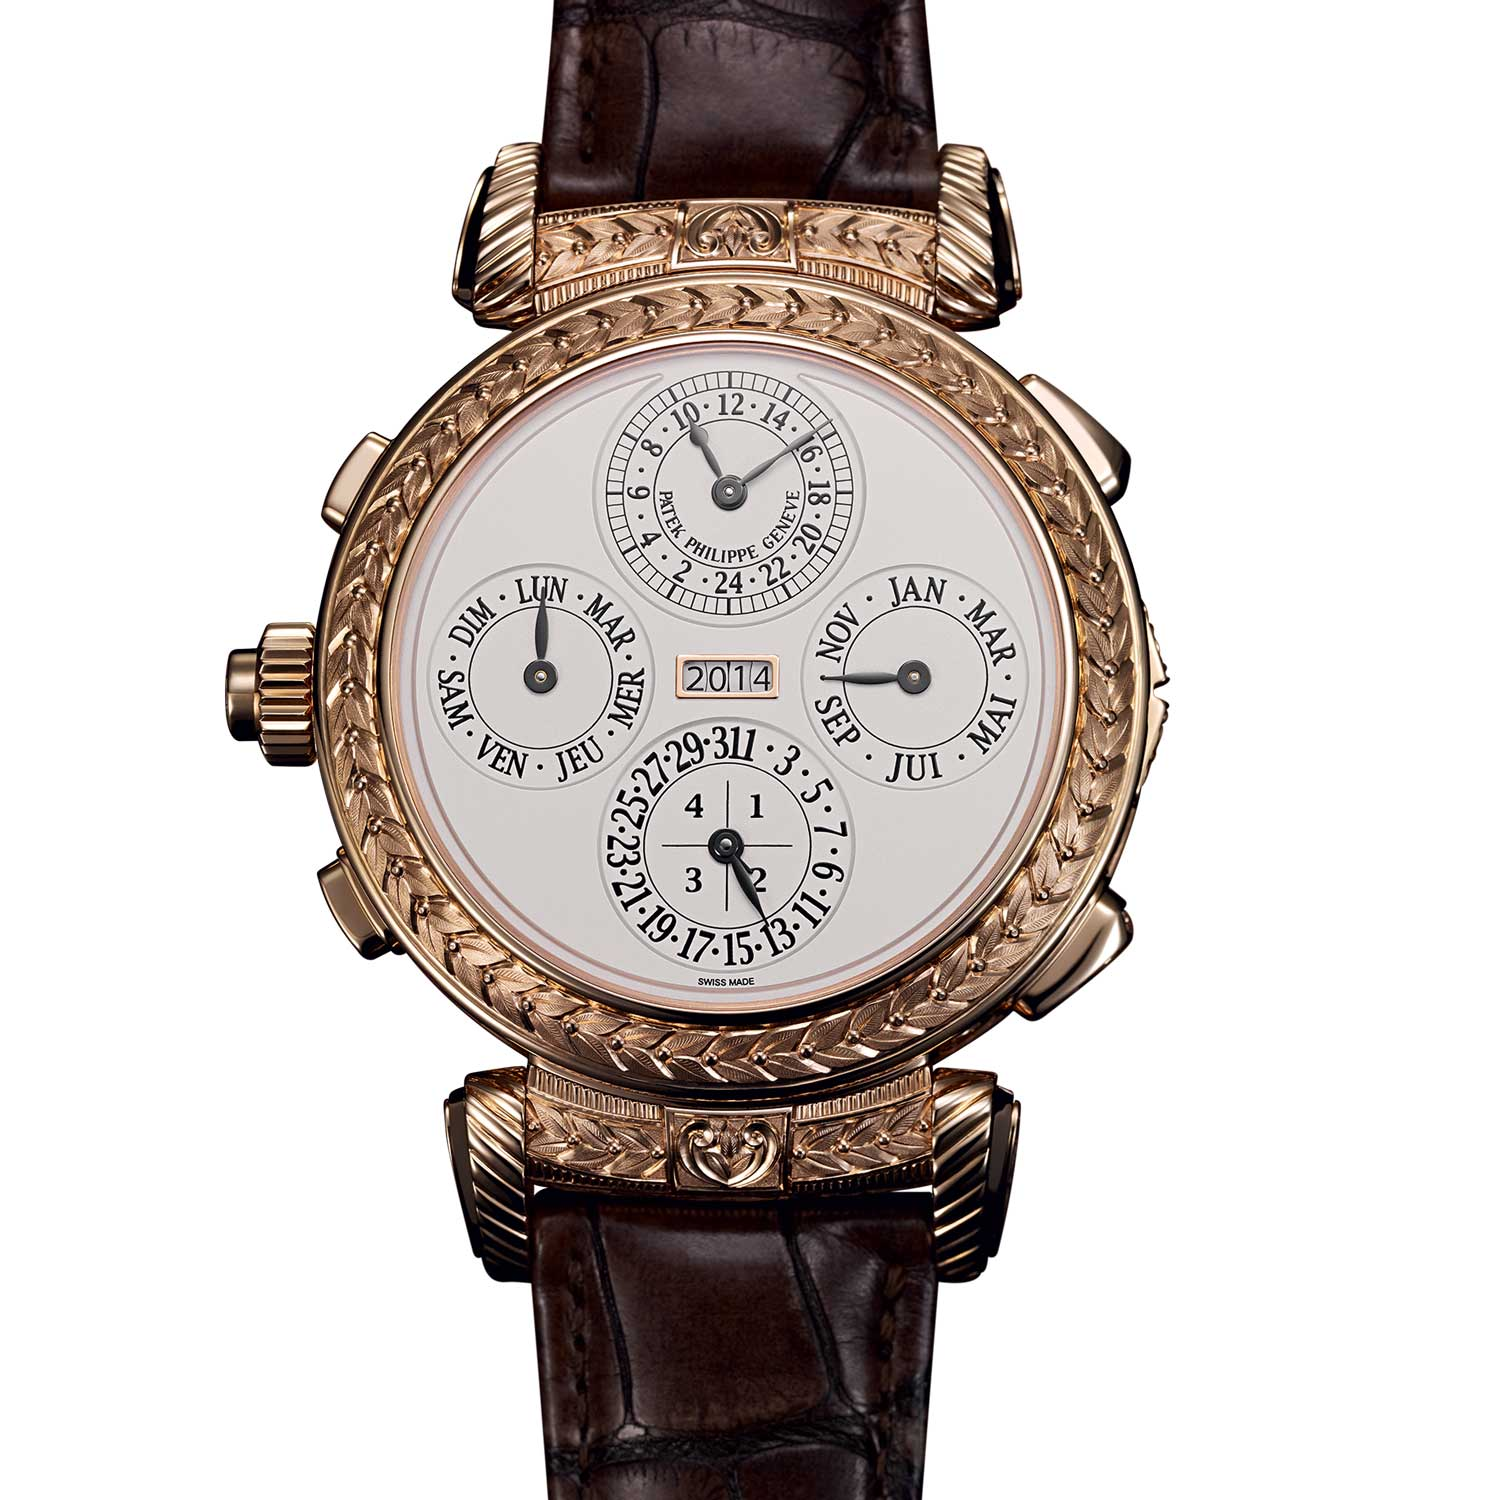 The Calendar Side: Grandmaster Chime launched in 2014 to celebrate Patek's 175th anniversary was a double-face wristwatch, boasting 20 complications